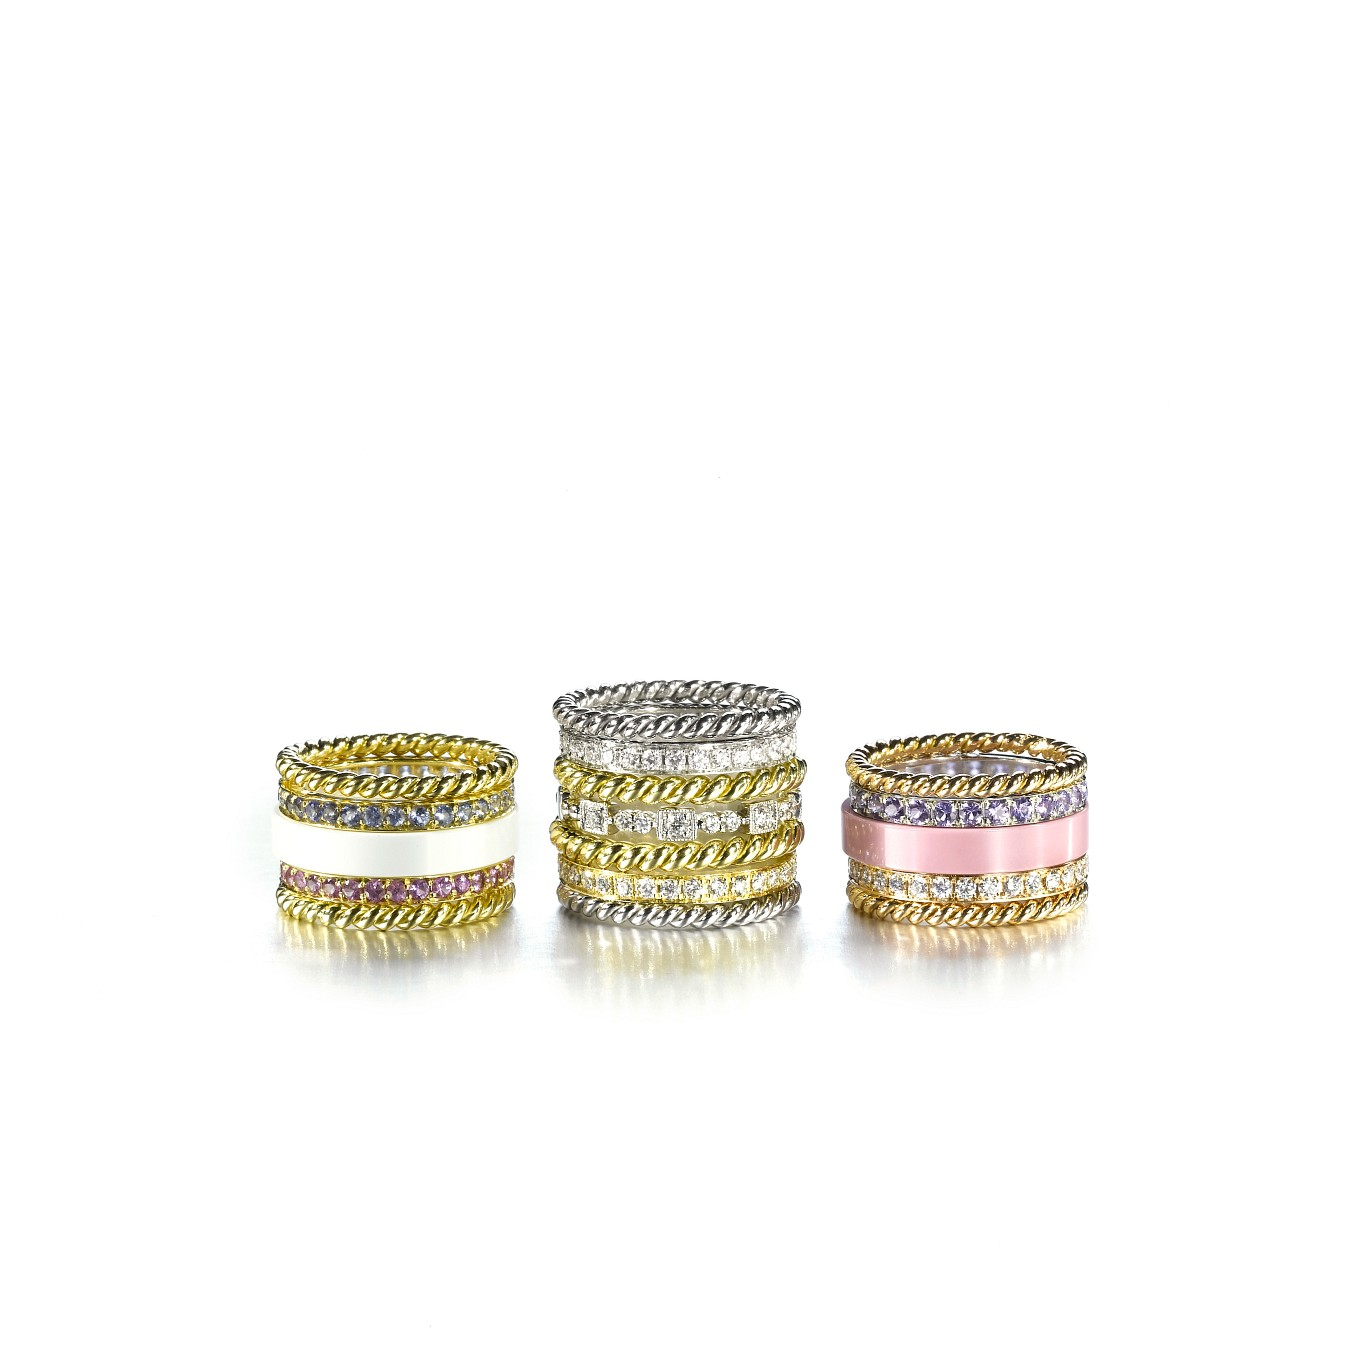 STACKING RINGS - BRAIDED BANDS WITH GEMSTONE & DIAMOND ETERNITY BANDS & CERAMIC STACKERS